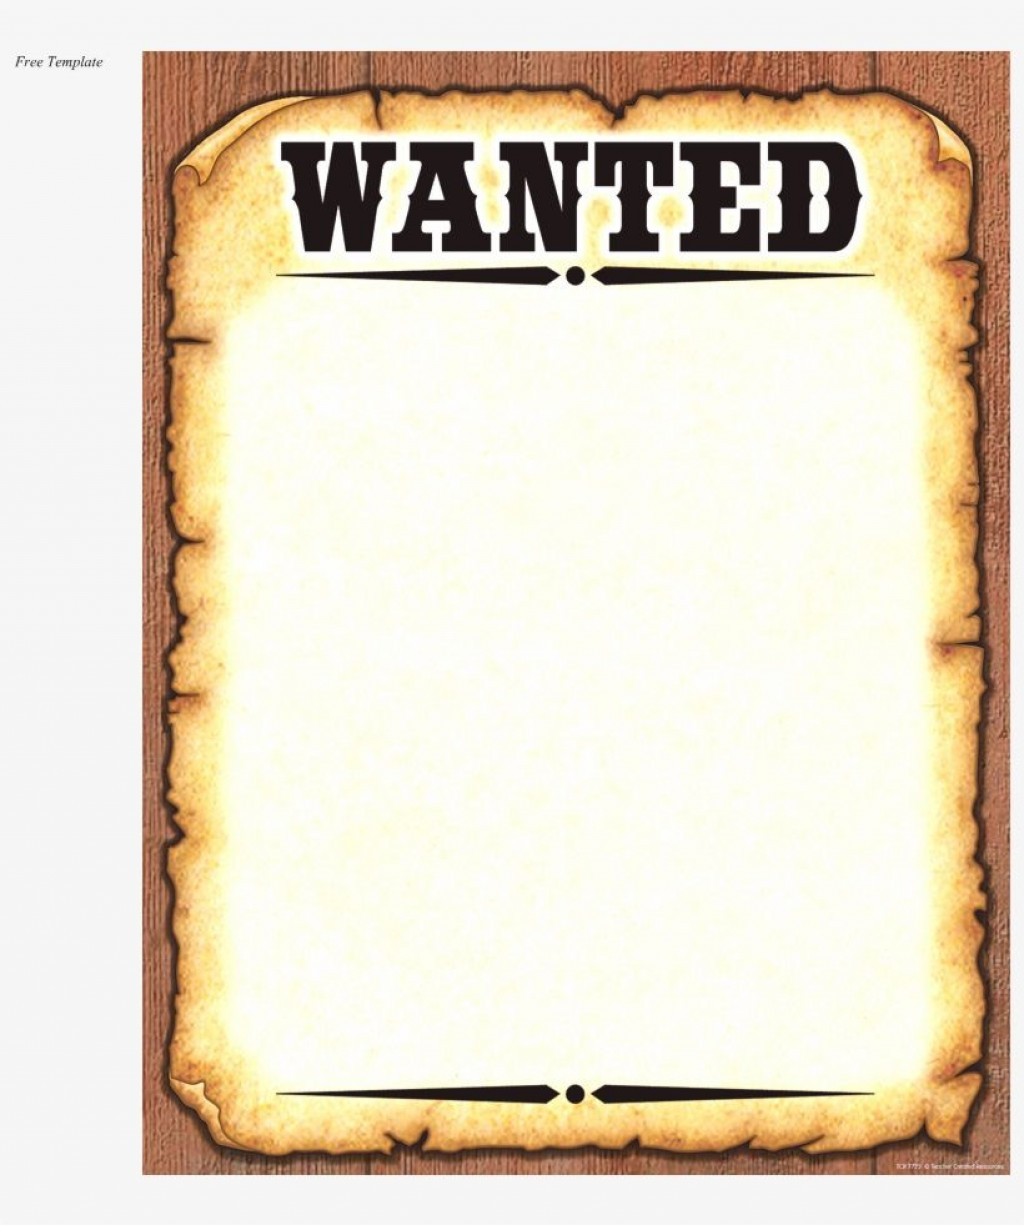 004 Shocking Wanted Poster Template Free Printable Idea  MostLarge